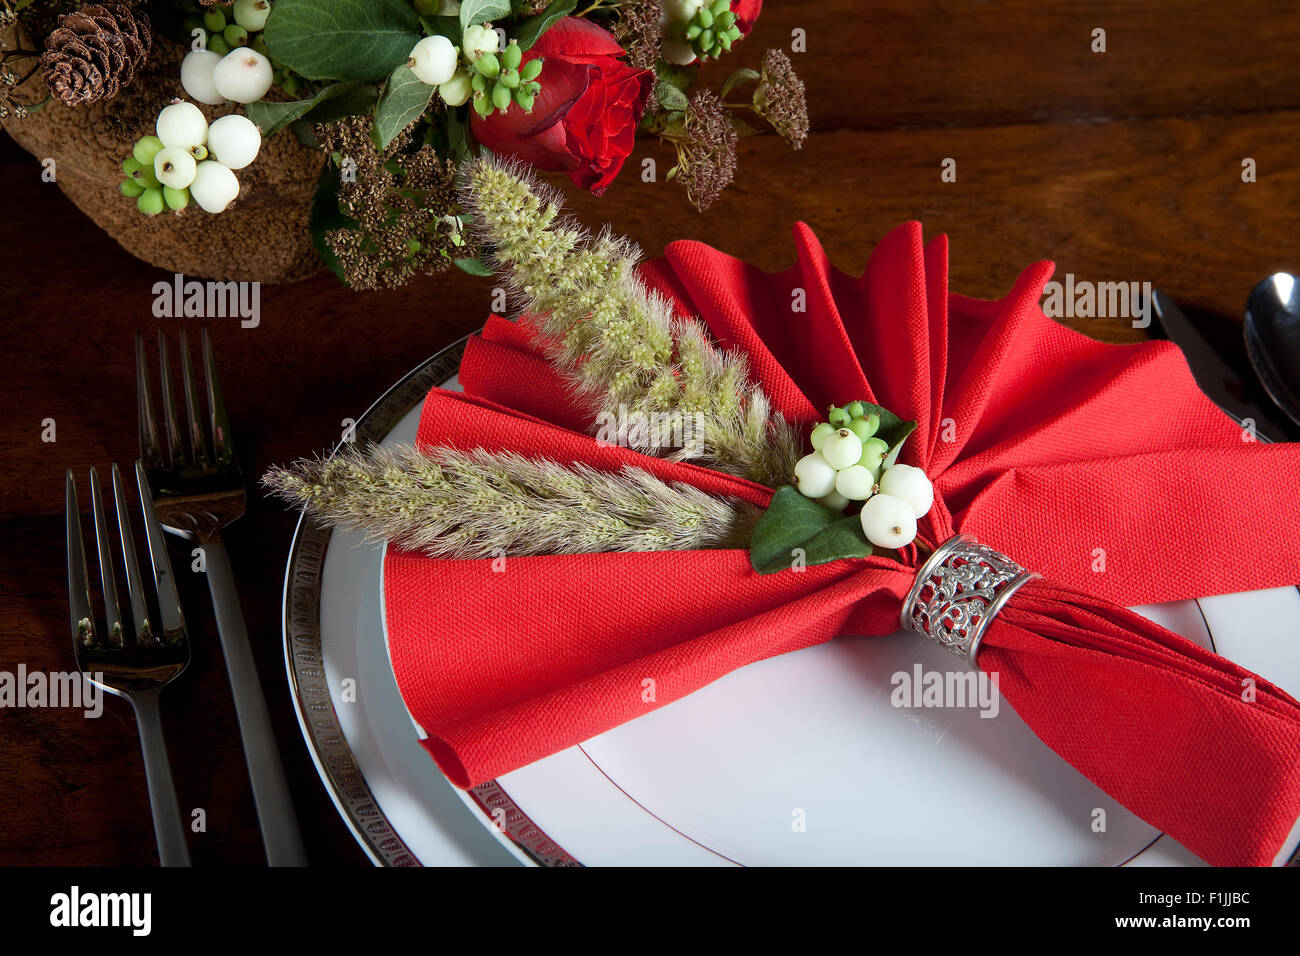 Festive Red Decorated Napkin With Ornate Sterling Silver Napkin Ring